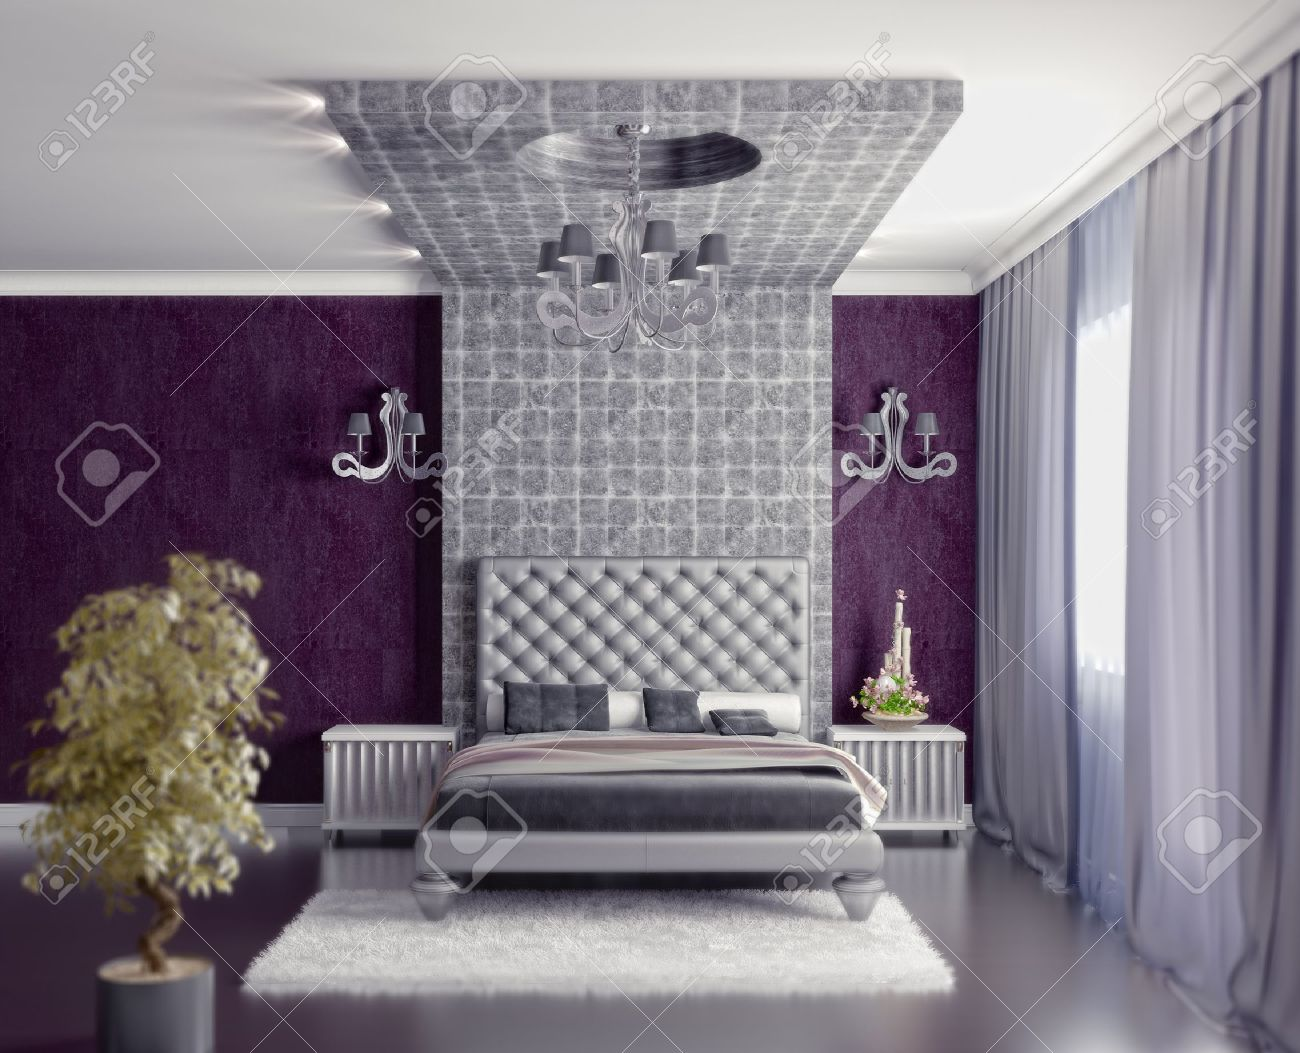 Stock Photo   modern style bedroom interior 3d render  DOF efffect. Modern Style Bedroom Interior 3d Render  DOF Efffect  Stock Photo